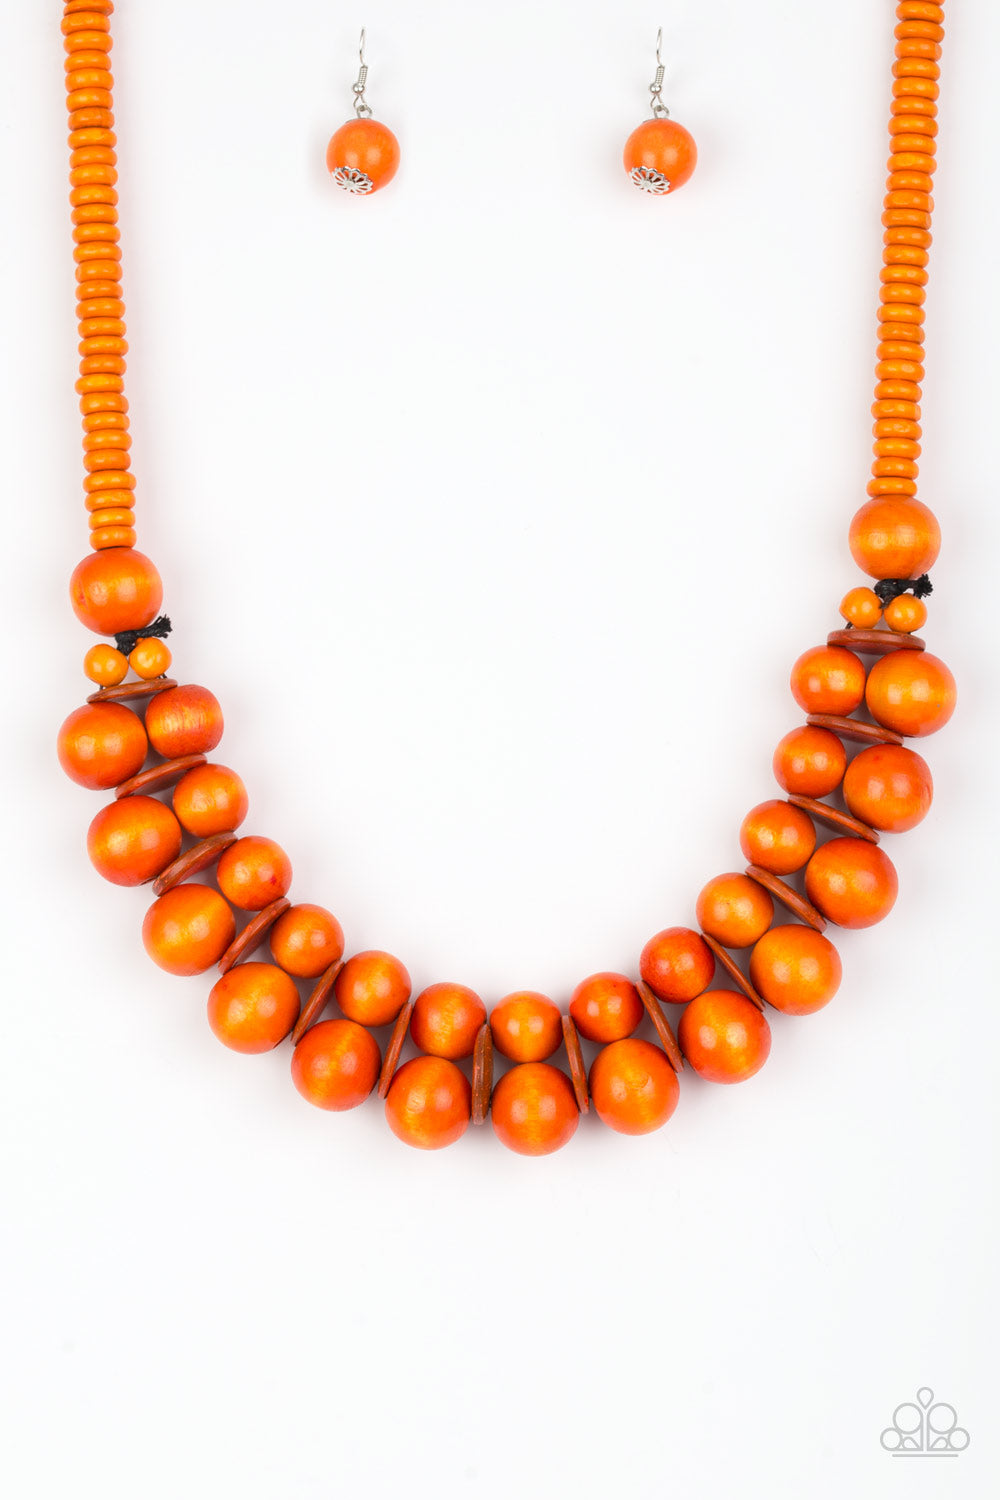 five-dollar-jewelry-caribbean-cover-girl-orange-necklace-paparazzi-accessories